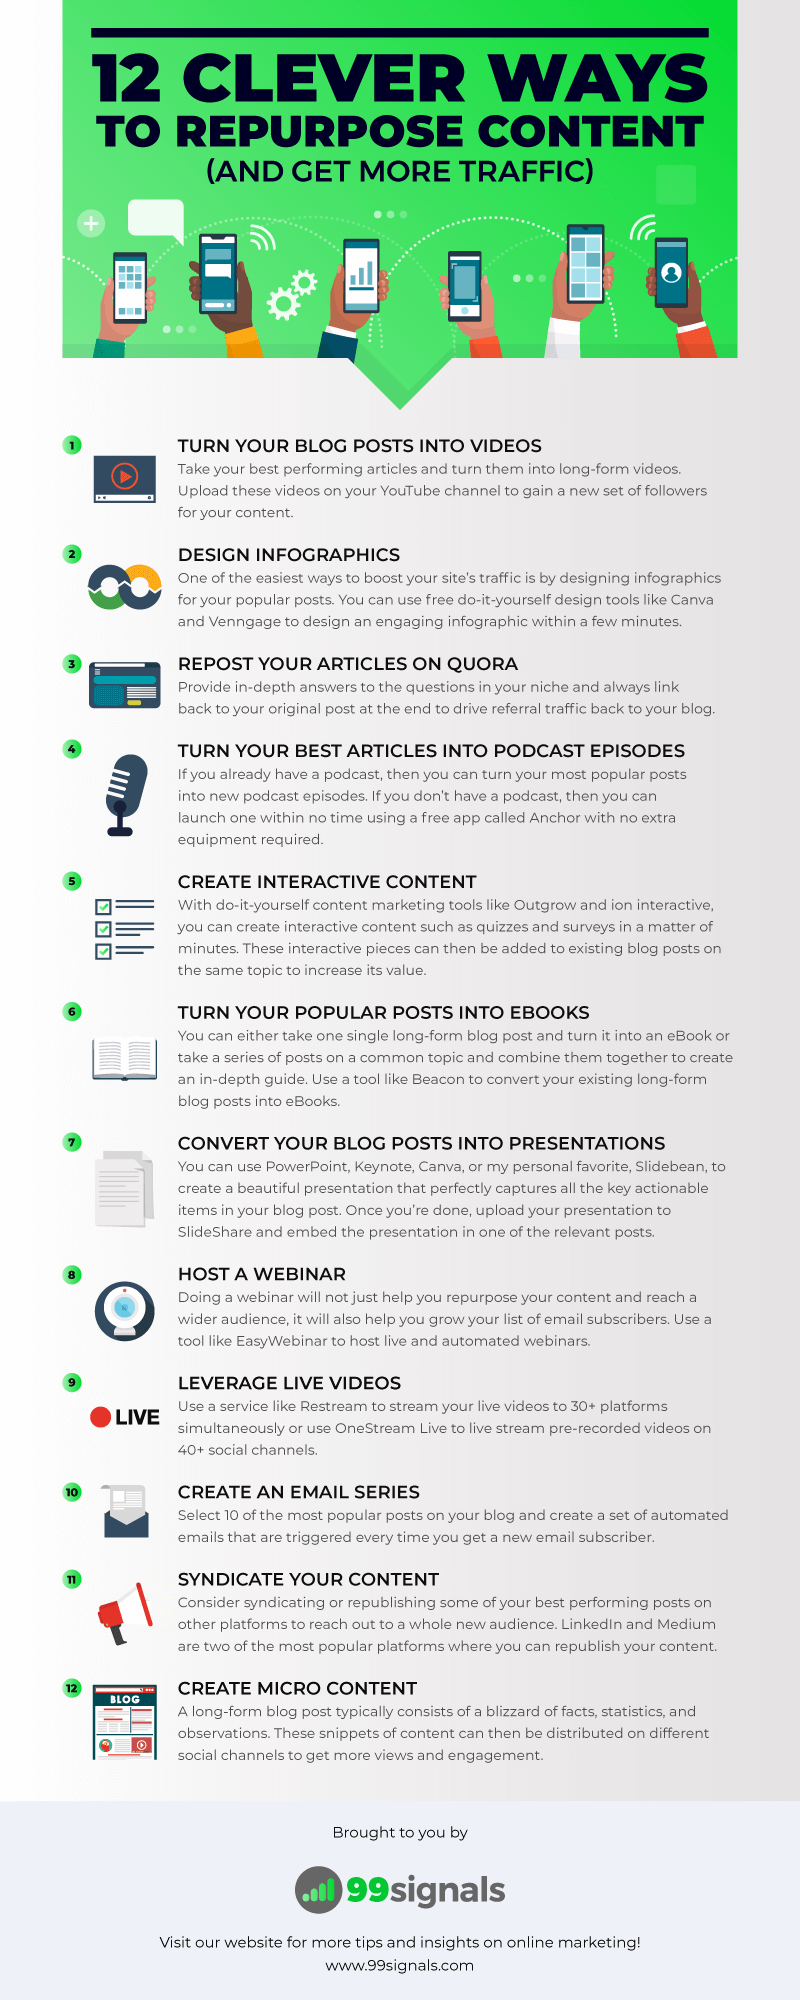 12 Ways to Repurpose Content - Infographic by 99signals